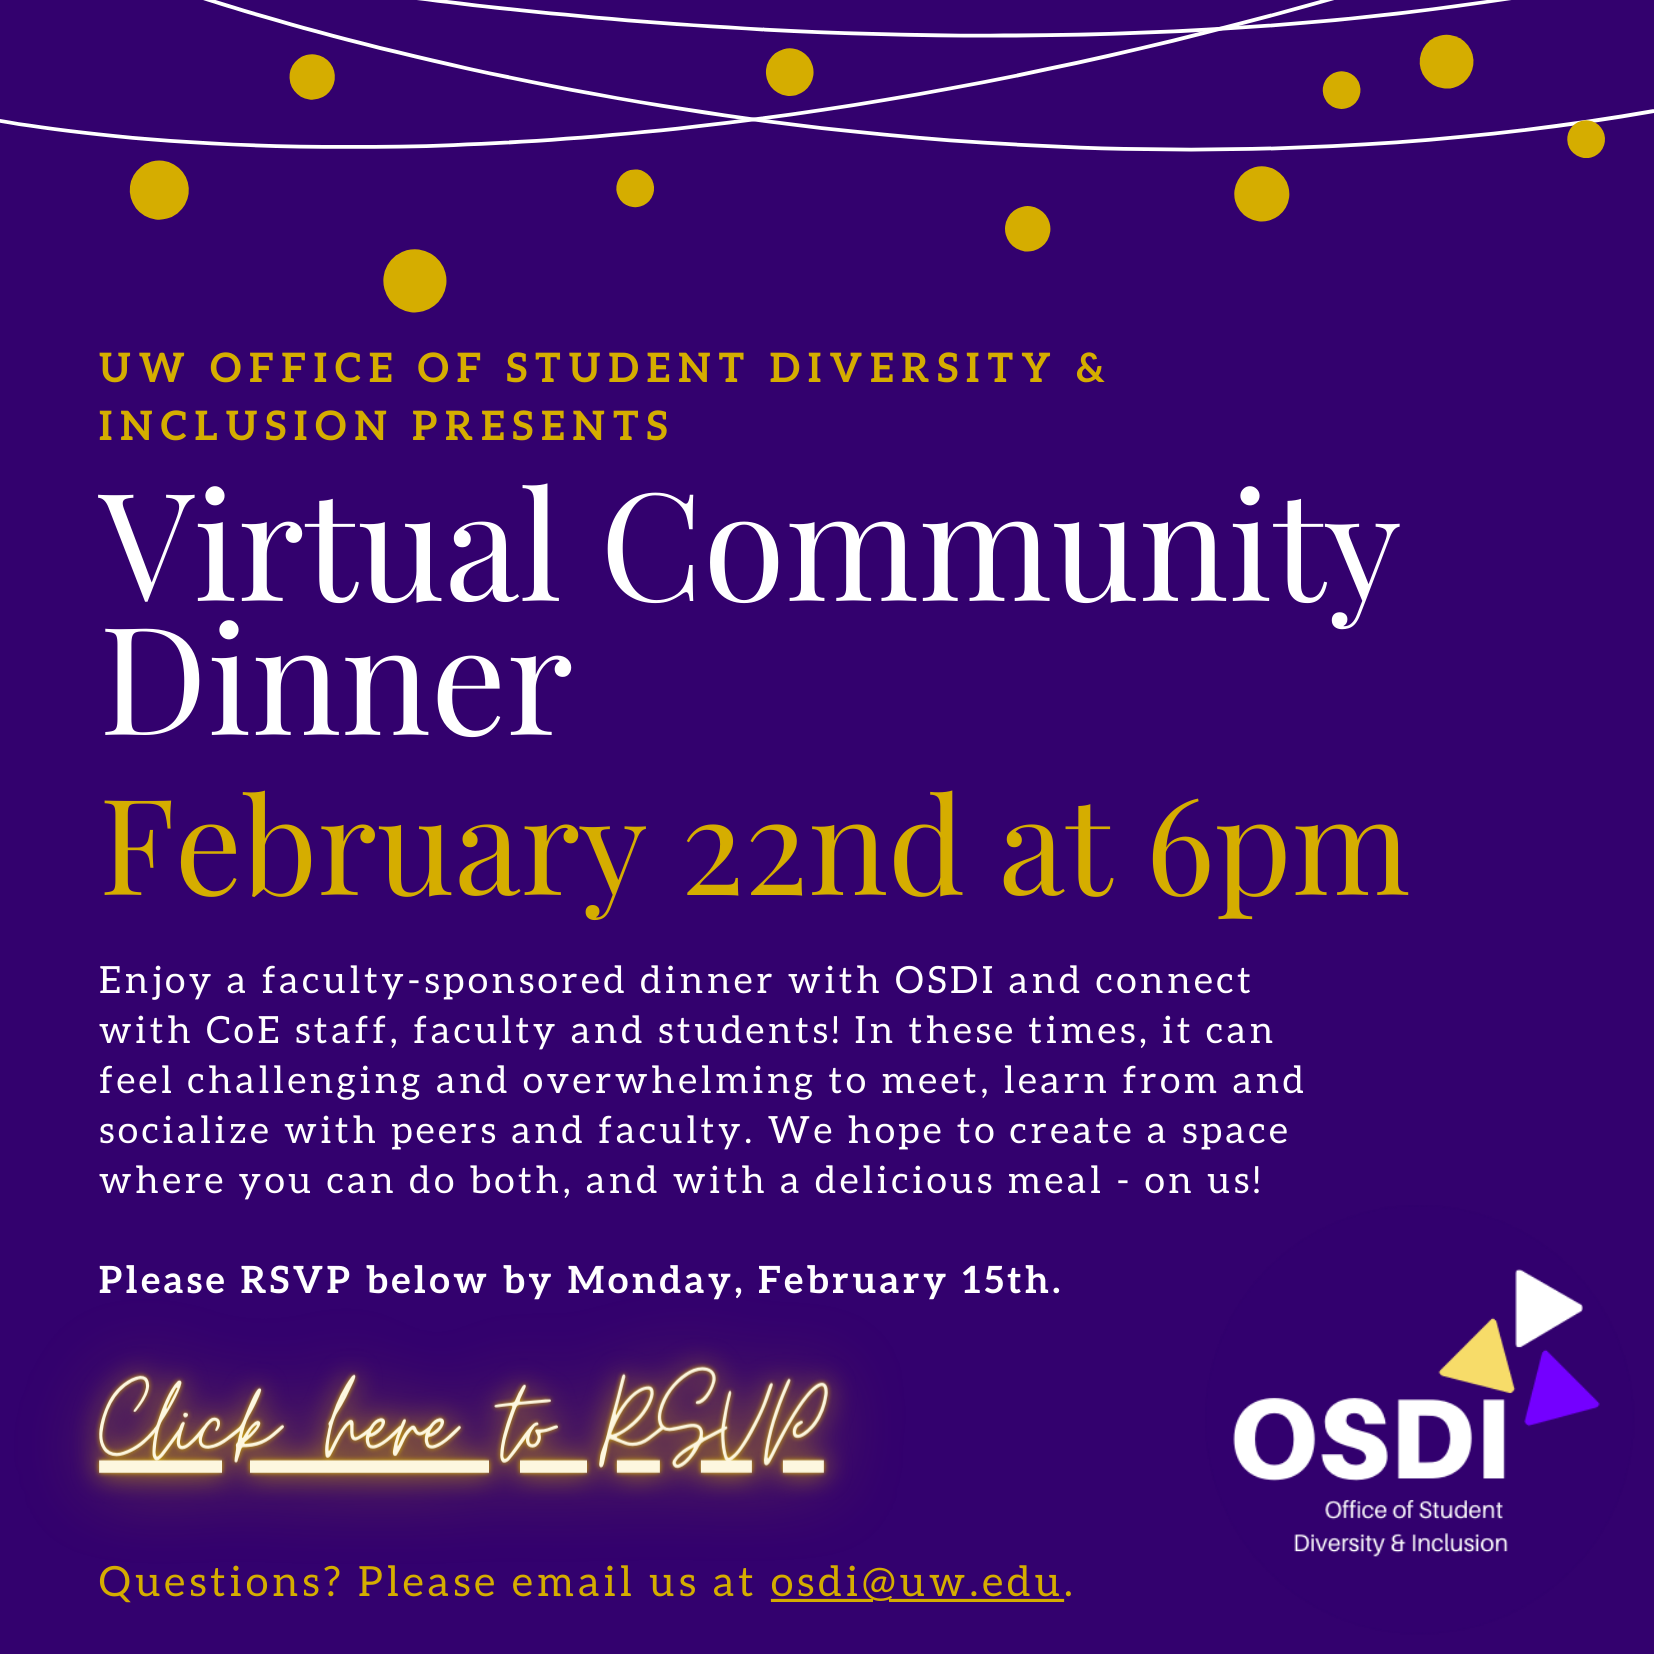 Flyer for OSDI's Virtual Community Dinner. Connect with College of Education students, staff, and faculty on February 22nd at 6:00pm. Dinner will be provided. Register at tinyurl.com/virtualdinner21